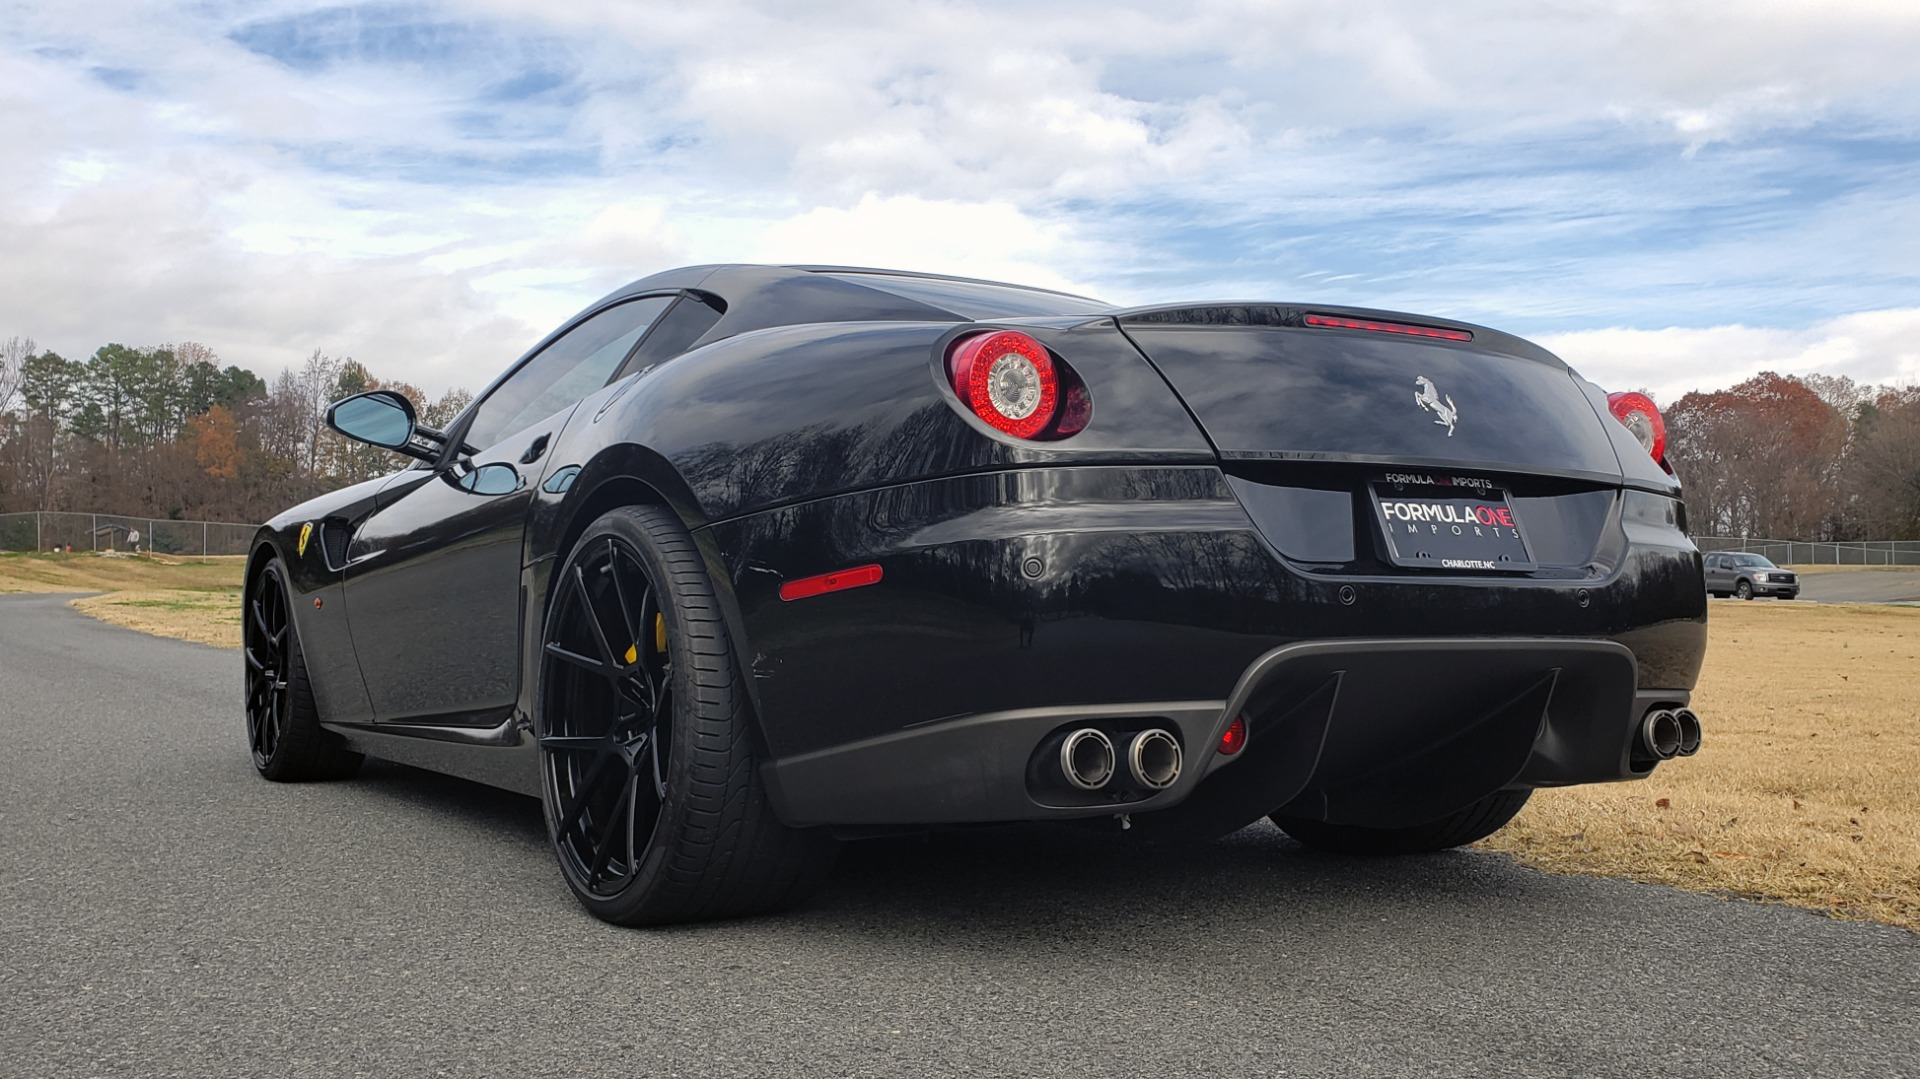 Used 2007 Ferrari 599 GTB FIORANO HGTE / V12 / F1 TRANS / NAV / BOSE / CUSTOM WHEELS for sale Sold at Formula Imports in Charlotte NC 28227 3